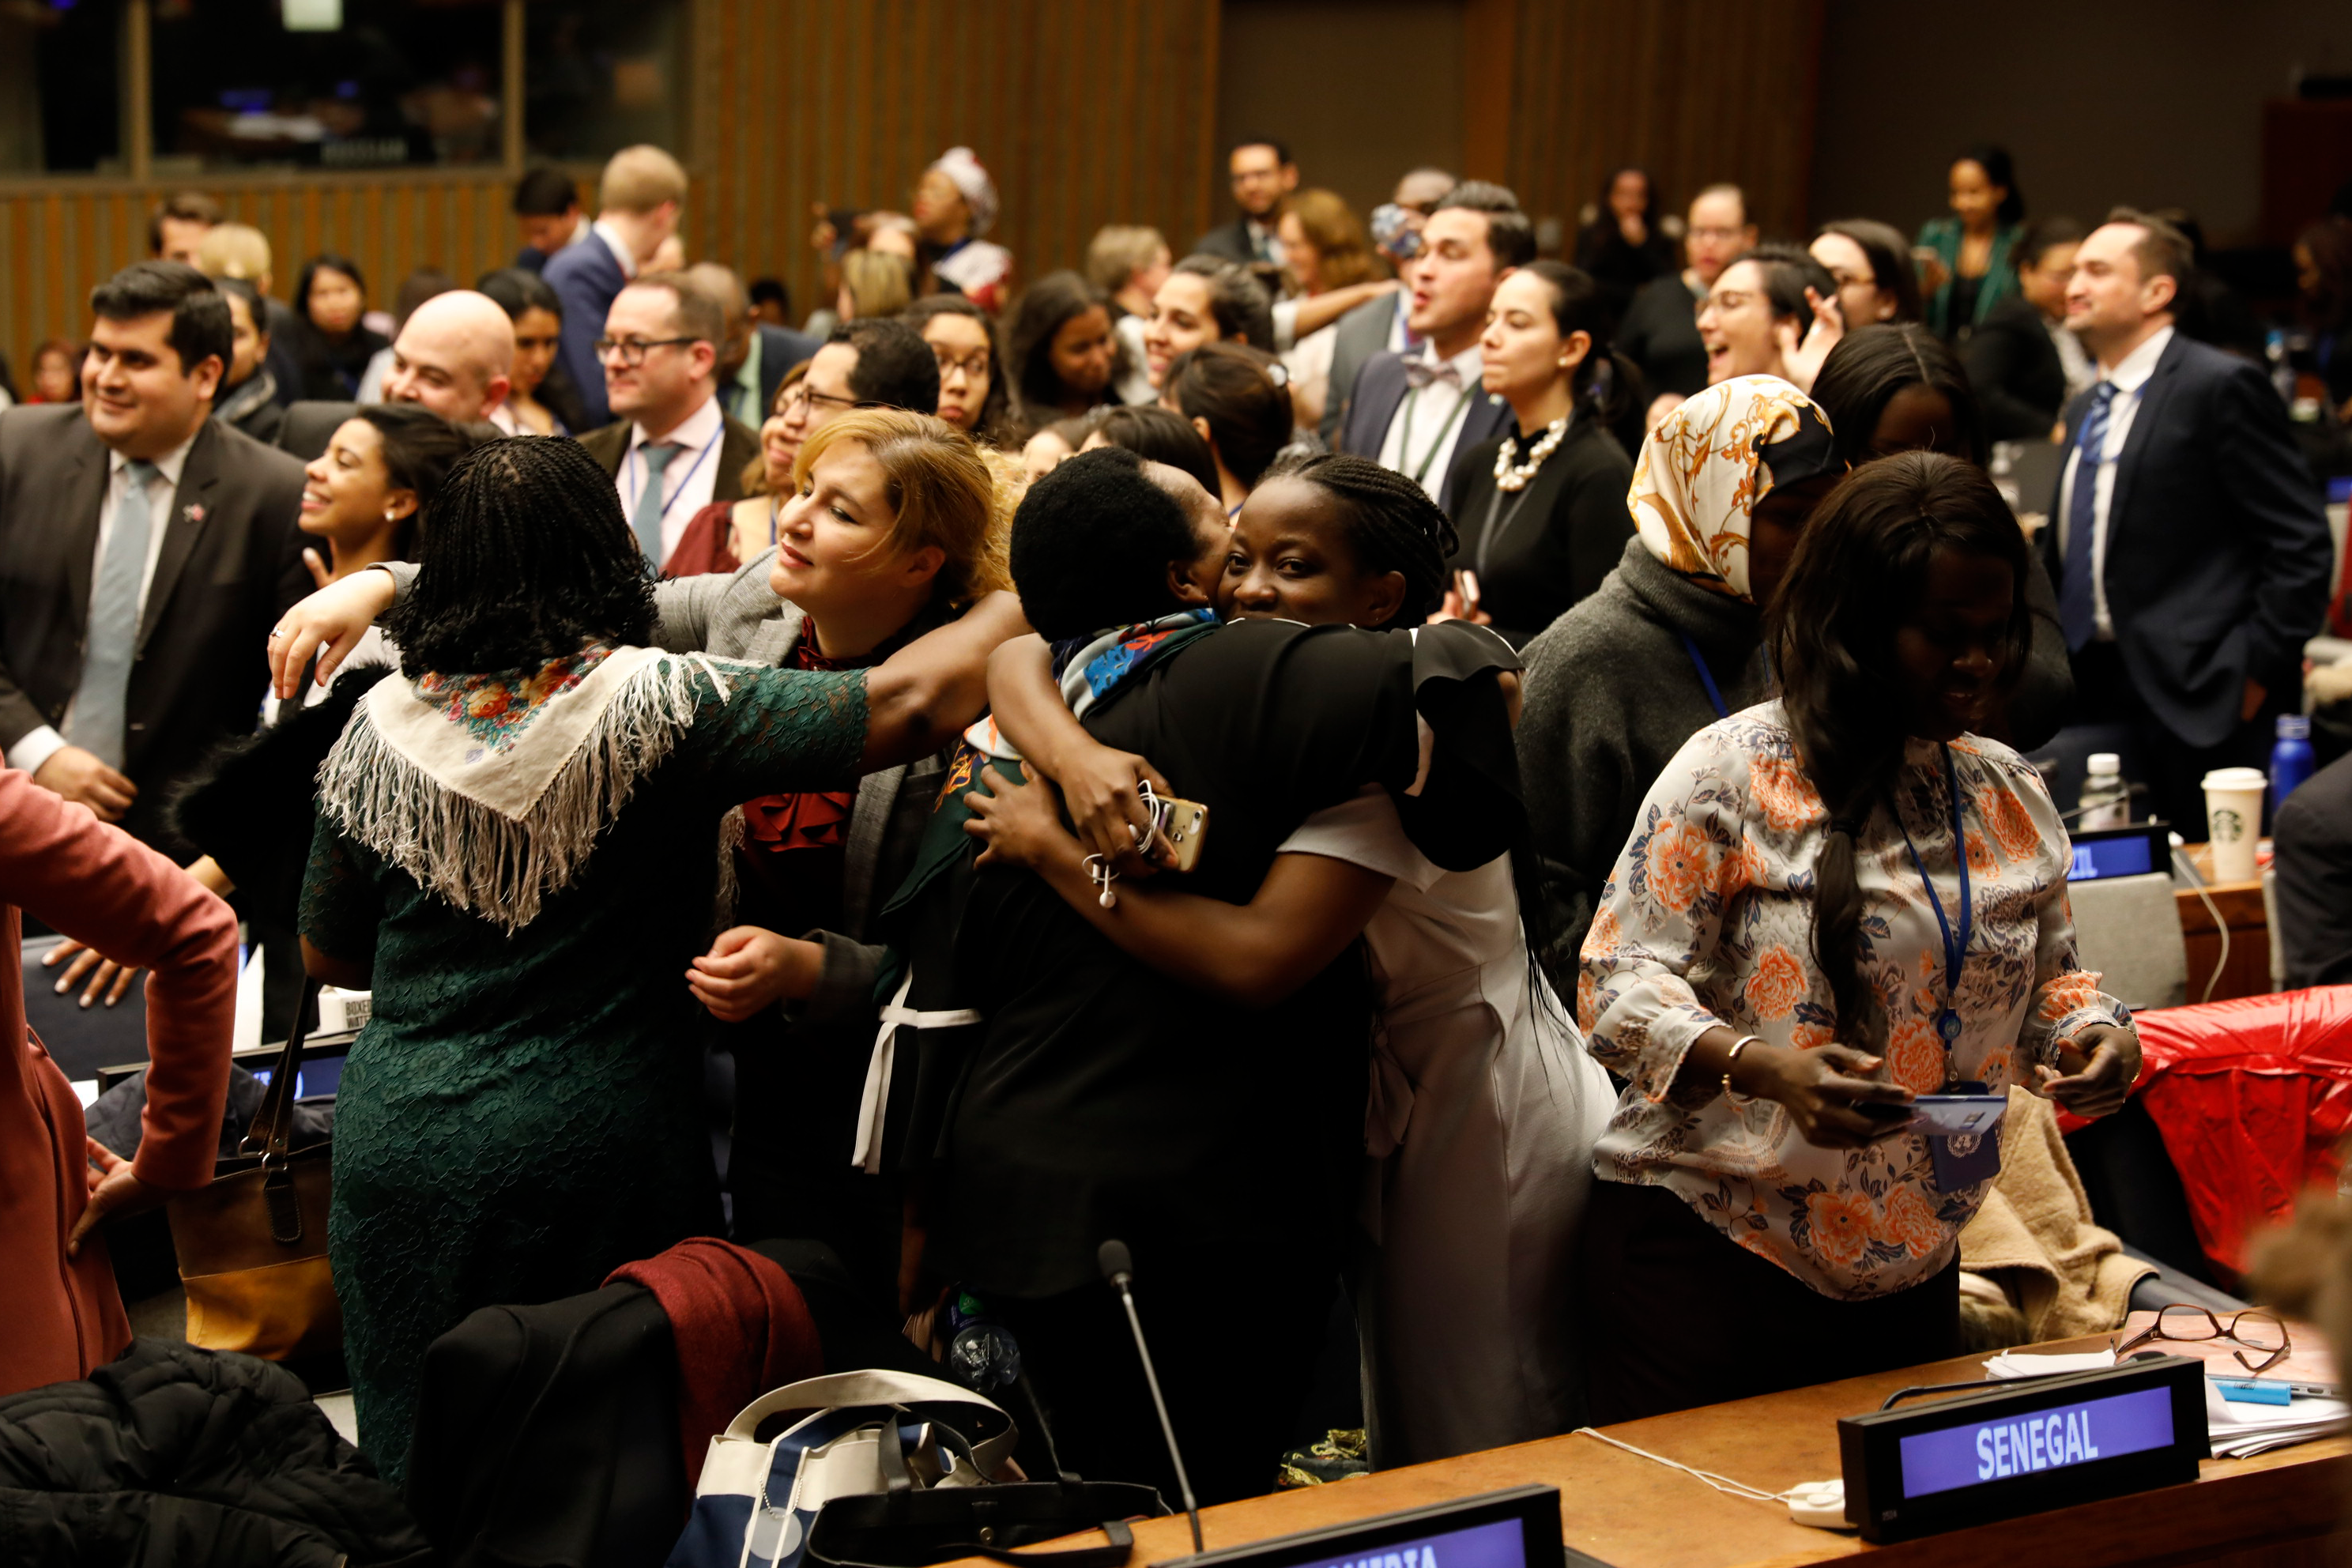 UN Commission on the Status of Women delivers roadmap on ensuring women's social protection, mobility, safety, and access to economic opportunities